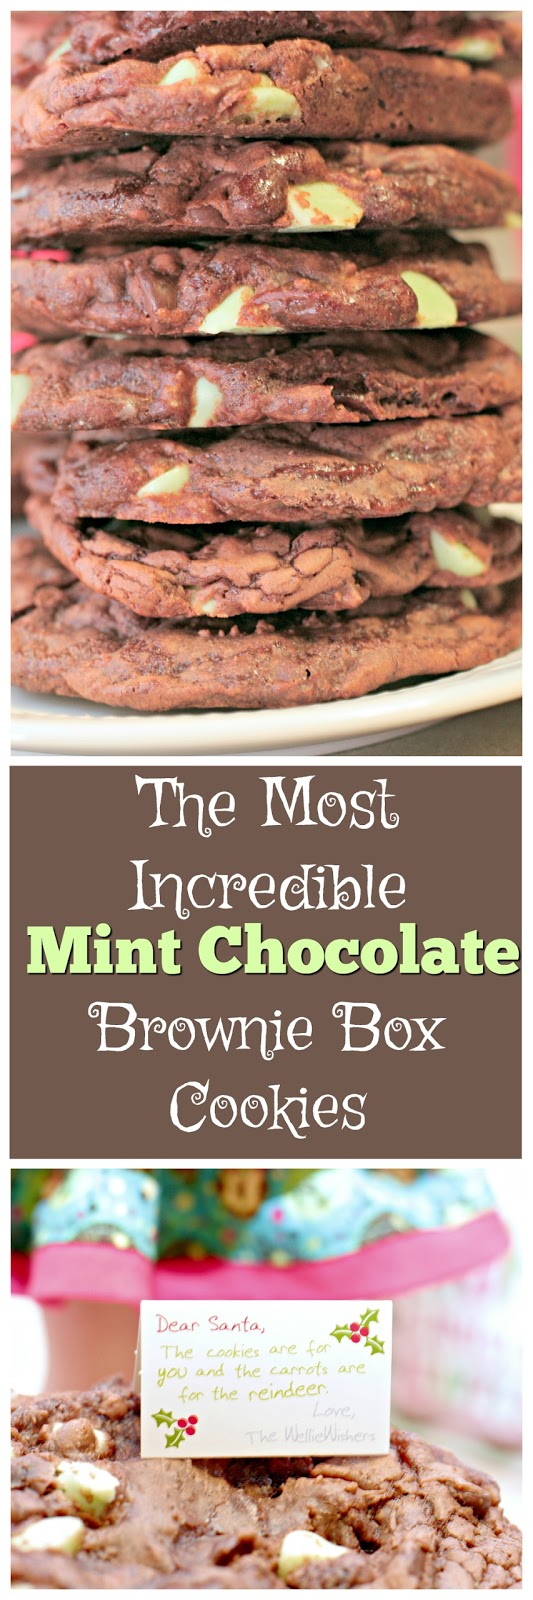 Brownie Box cookie recipe, mint chocolate brownie box cookies, how to make cookies from brownie mix, WellieWisher outfits, American Girl WellieWisher accessories